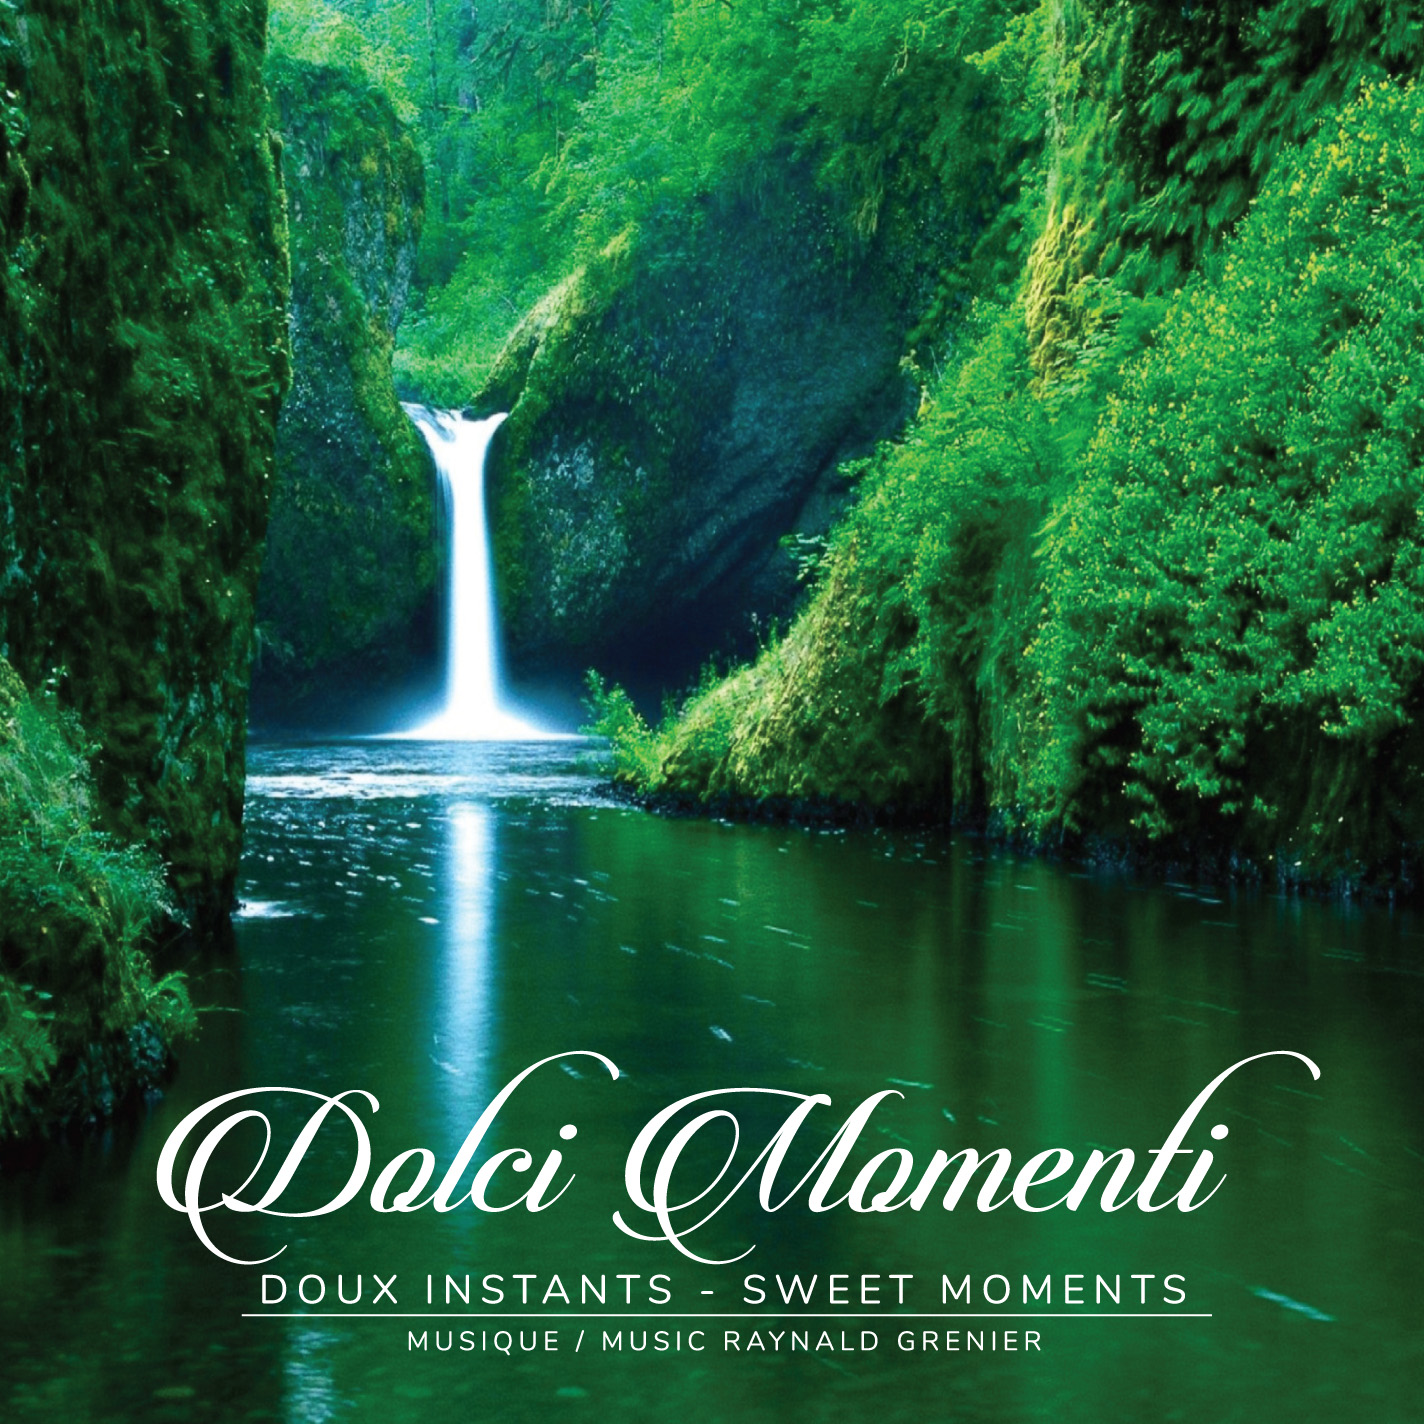 Raynald Grenier Releases Album, 'DOLCI MOMENTI Doux Instants - Sweet Moments'